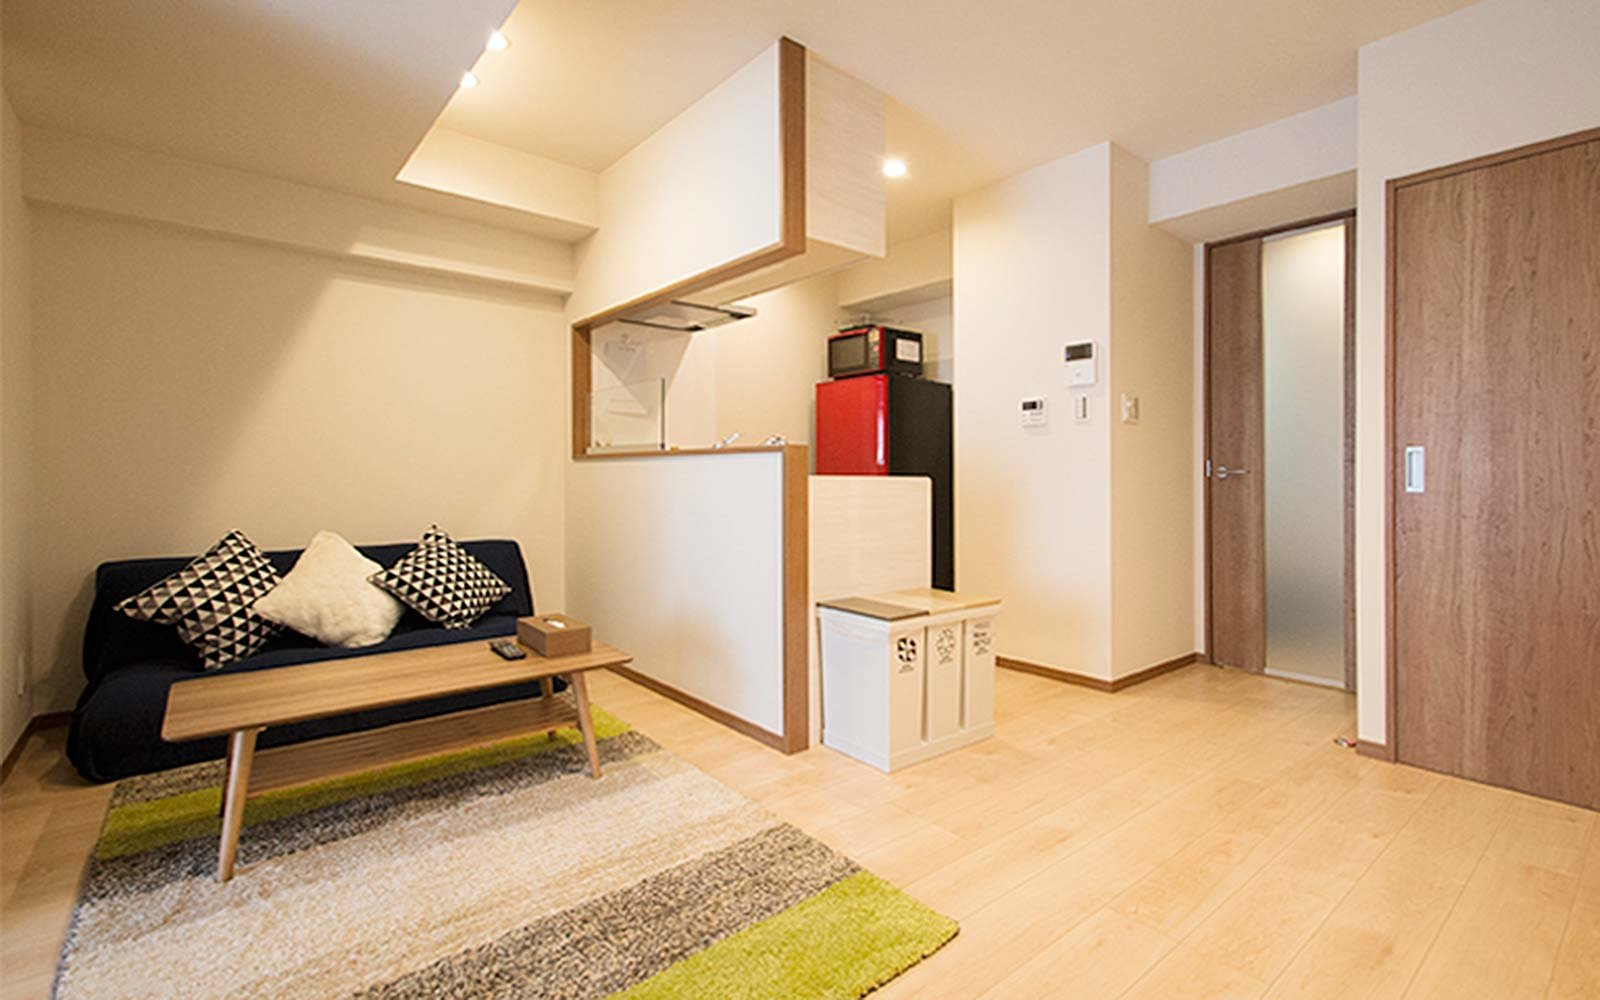 Tokyo An Vacation Holiday Apartment Rental Airbnb Luxury Ginza